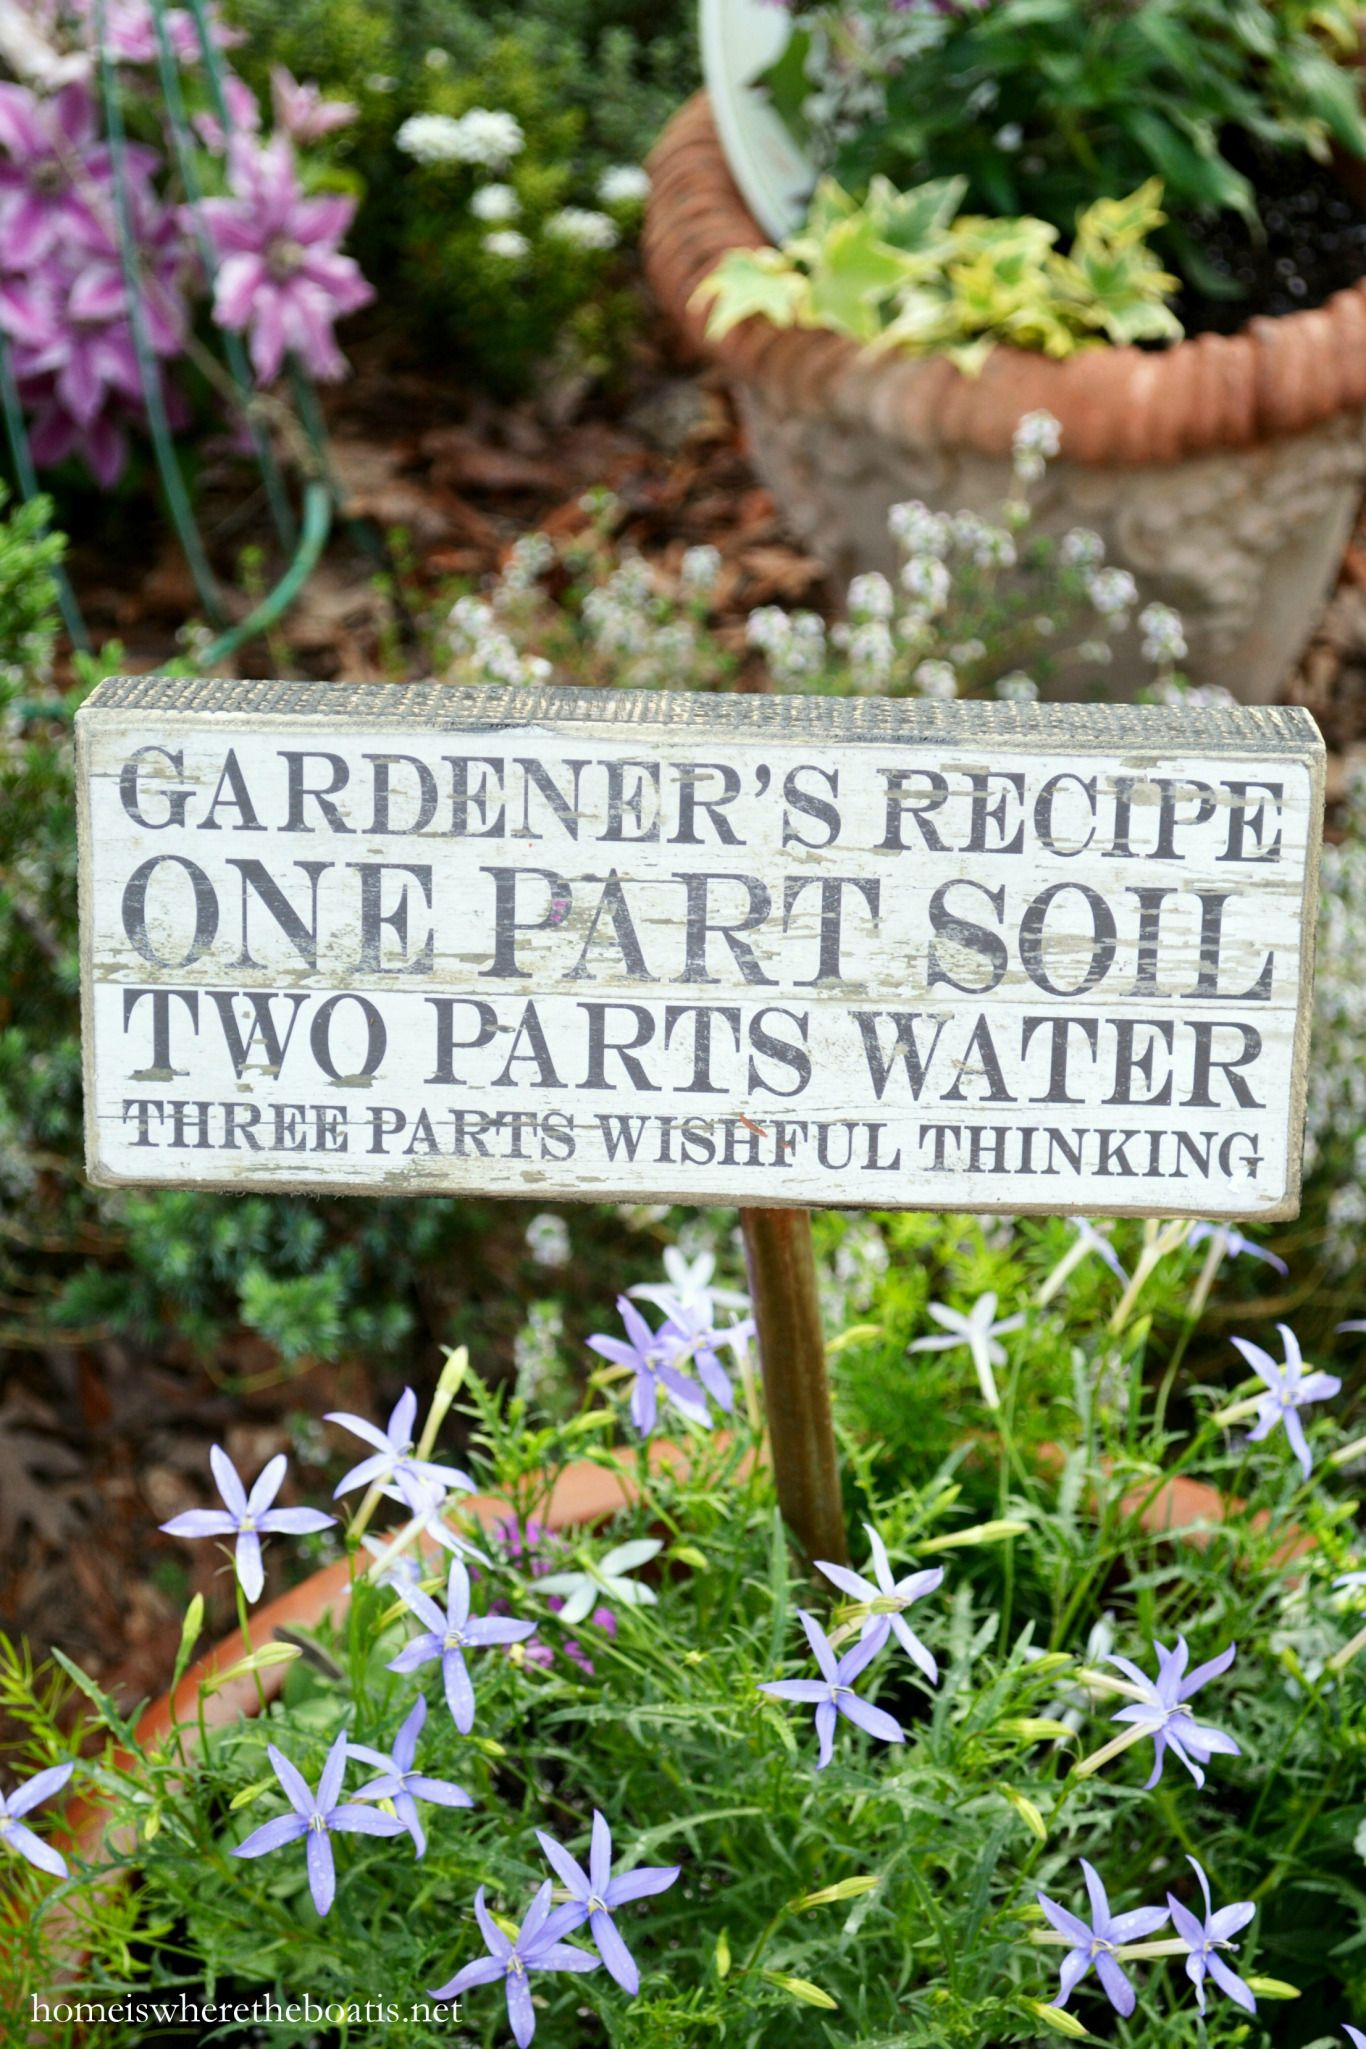 Gardener's Recipe for Planting Summer Annuals is part of Garden quotes, Herb garden, Flower garden, Plants, Garden, Gardening humor - My Gardener's Recipe for planting is one I follow every year One Part Soil Two Parts Water Three Parts Wishful Thinking  I'm always thrilled to see blooms return in the spring, a mini…